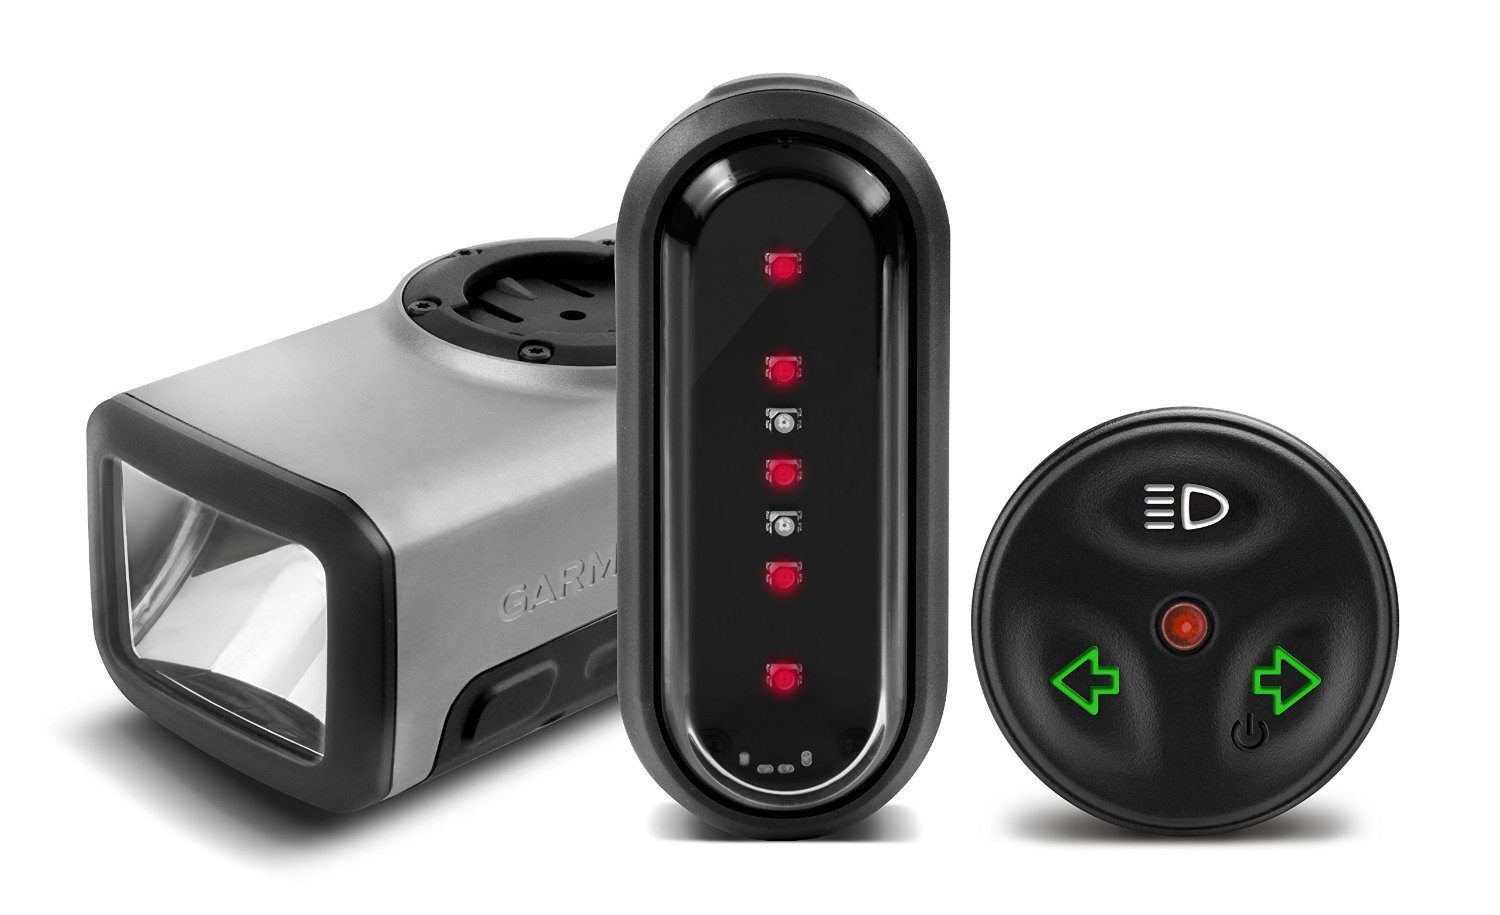 best gps devices and tracking wearables for cycling 10 - Stay connected on the road, best GPS devices and wearable tech for cycling